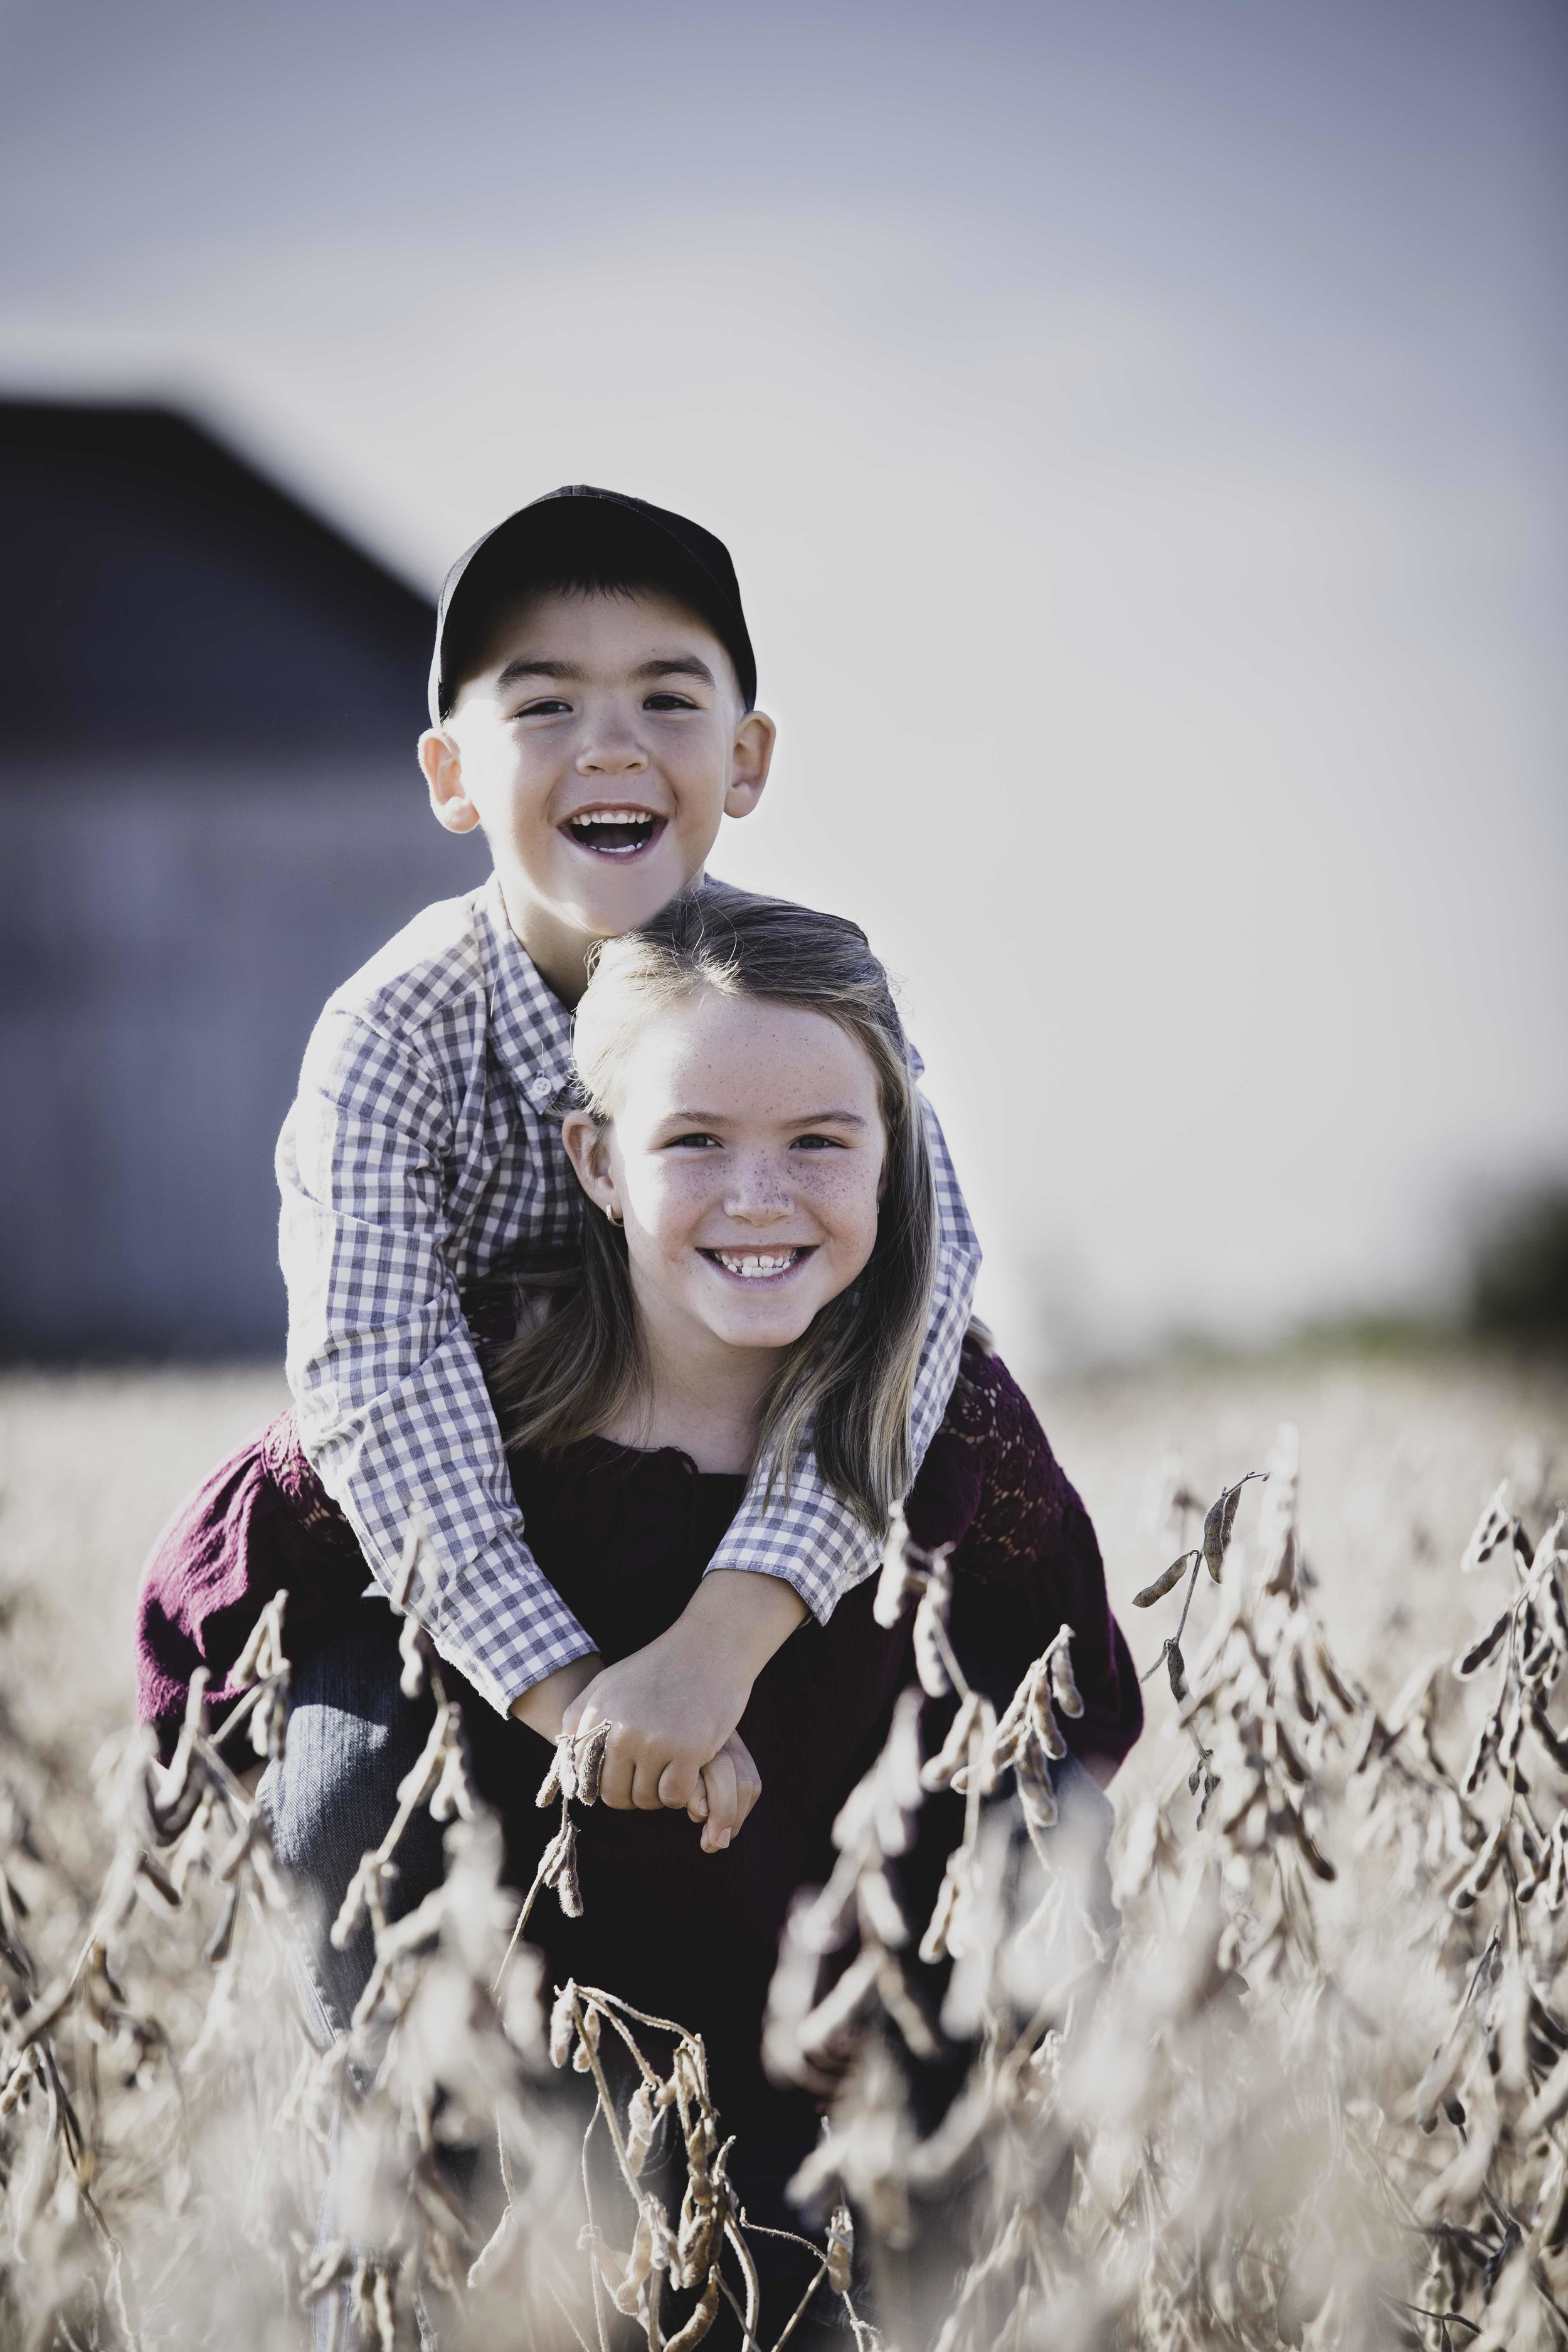 Jodie-Aldred-Photography-Chatham-Kent-Elgin-Middlesex-London-Ontario-Farm-Family-Kids-Soybeans.jpg